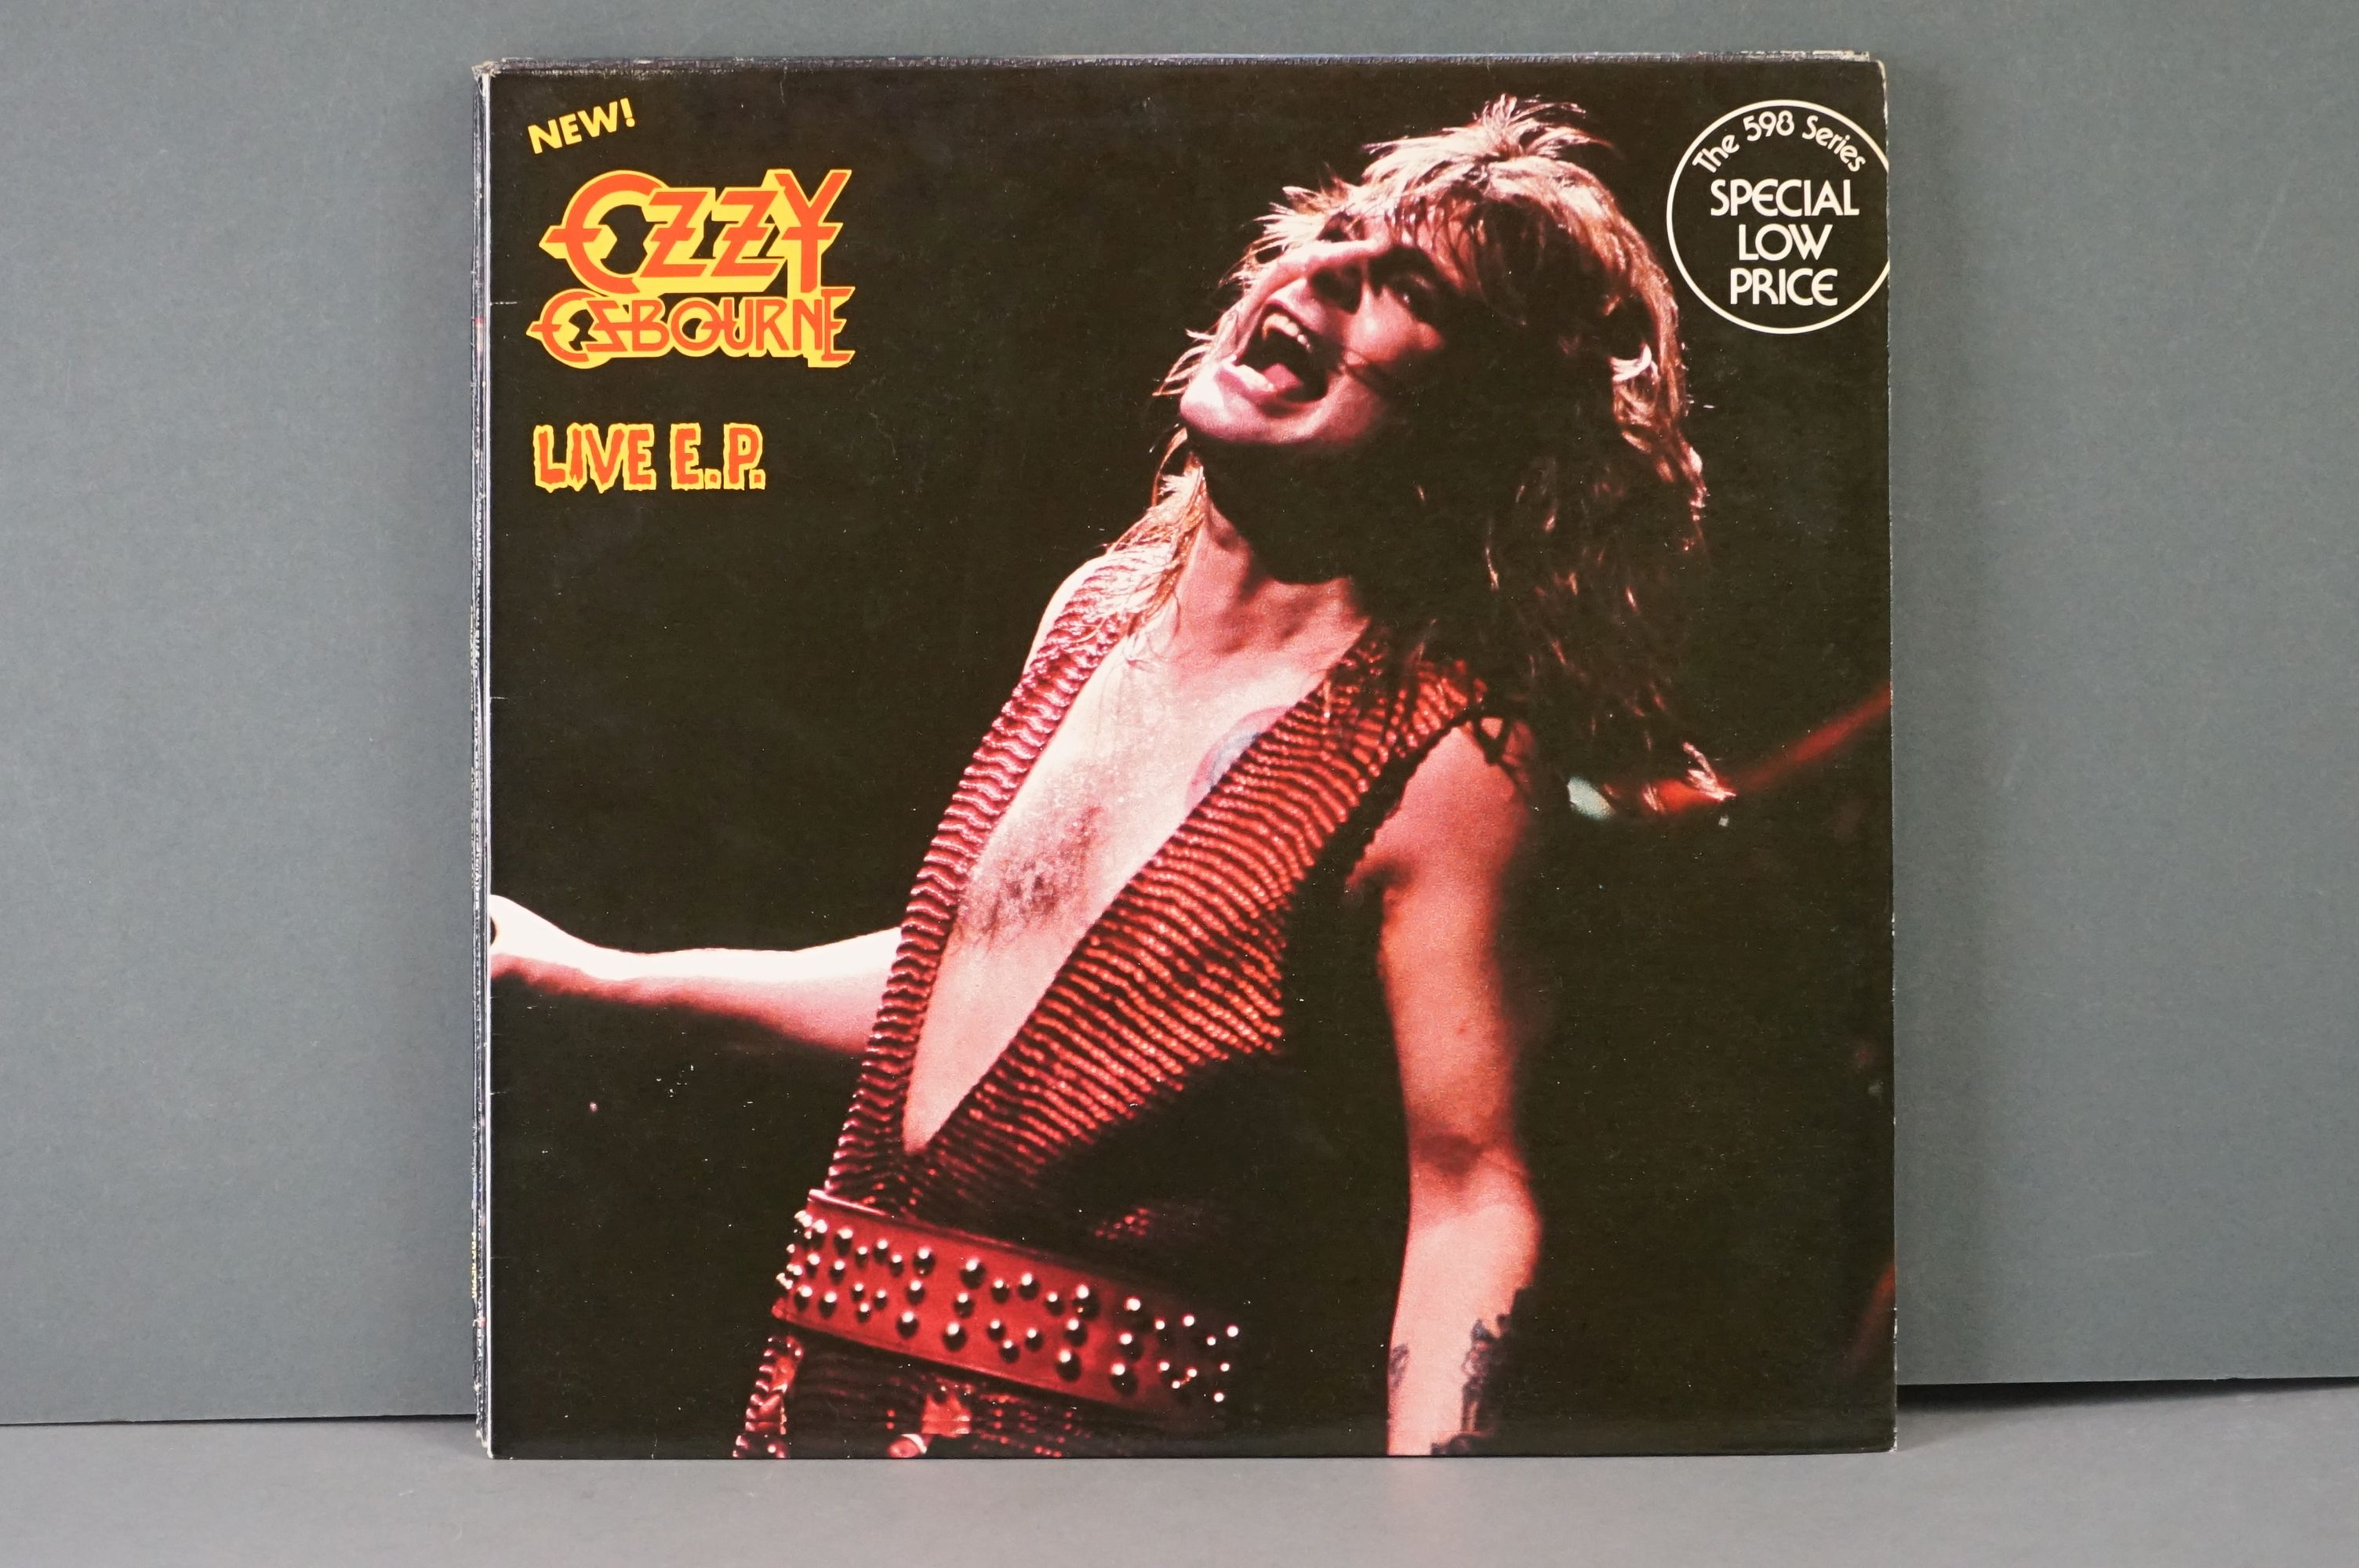 Vinyl - Six Ozzy Osbourne vinyl LP's to include The Ultimate Sin (Epic Records 26404), Live E.P. ( - Image 4 of 8